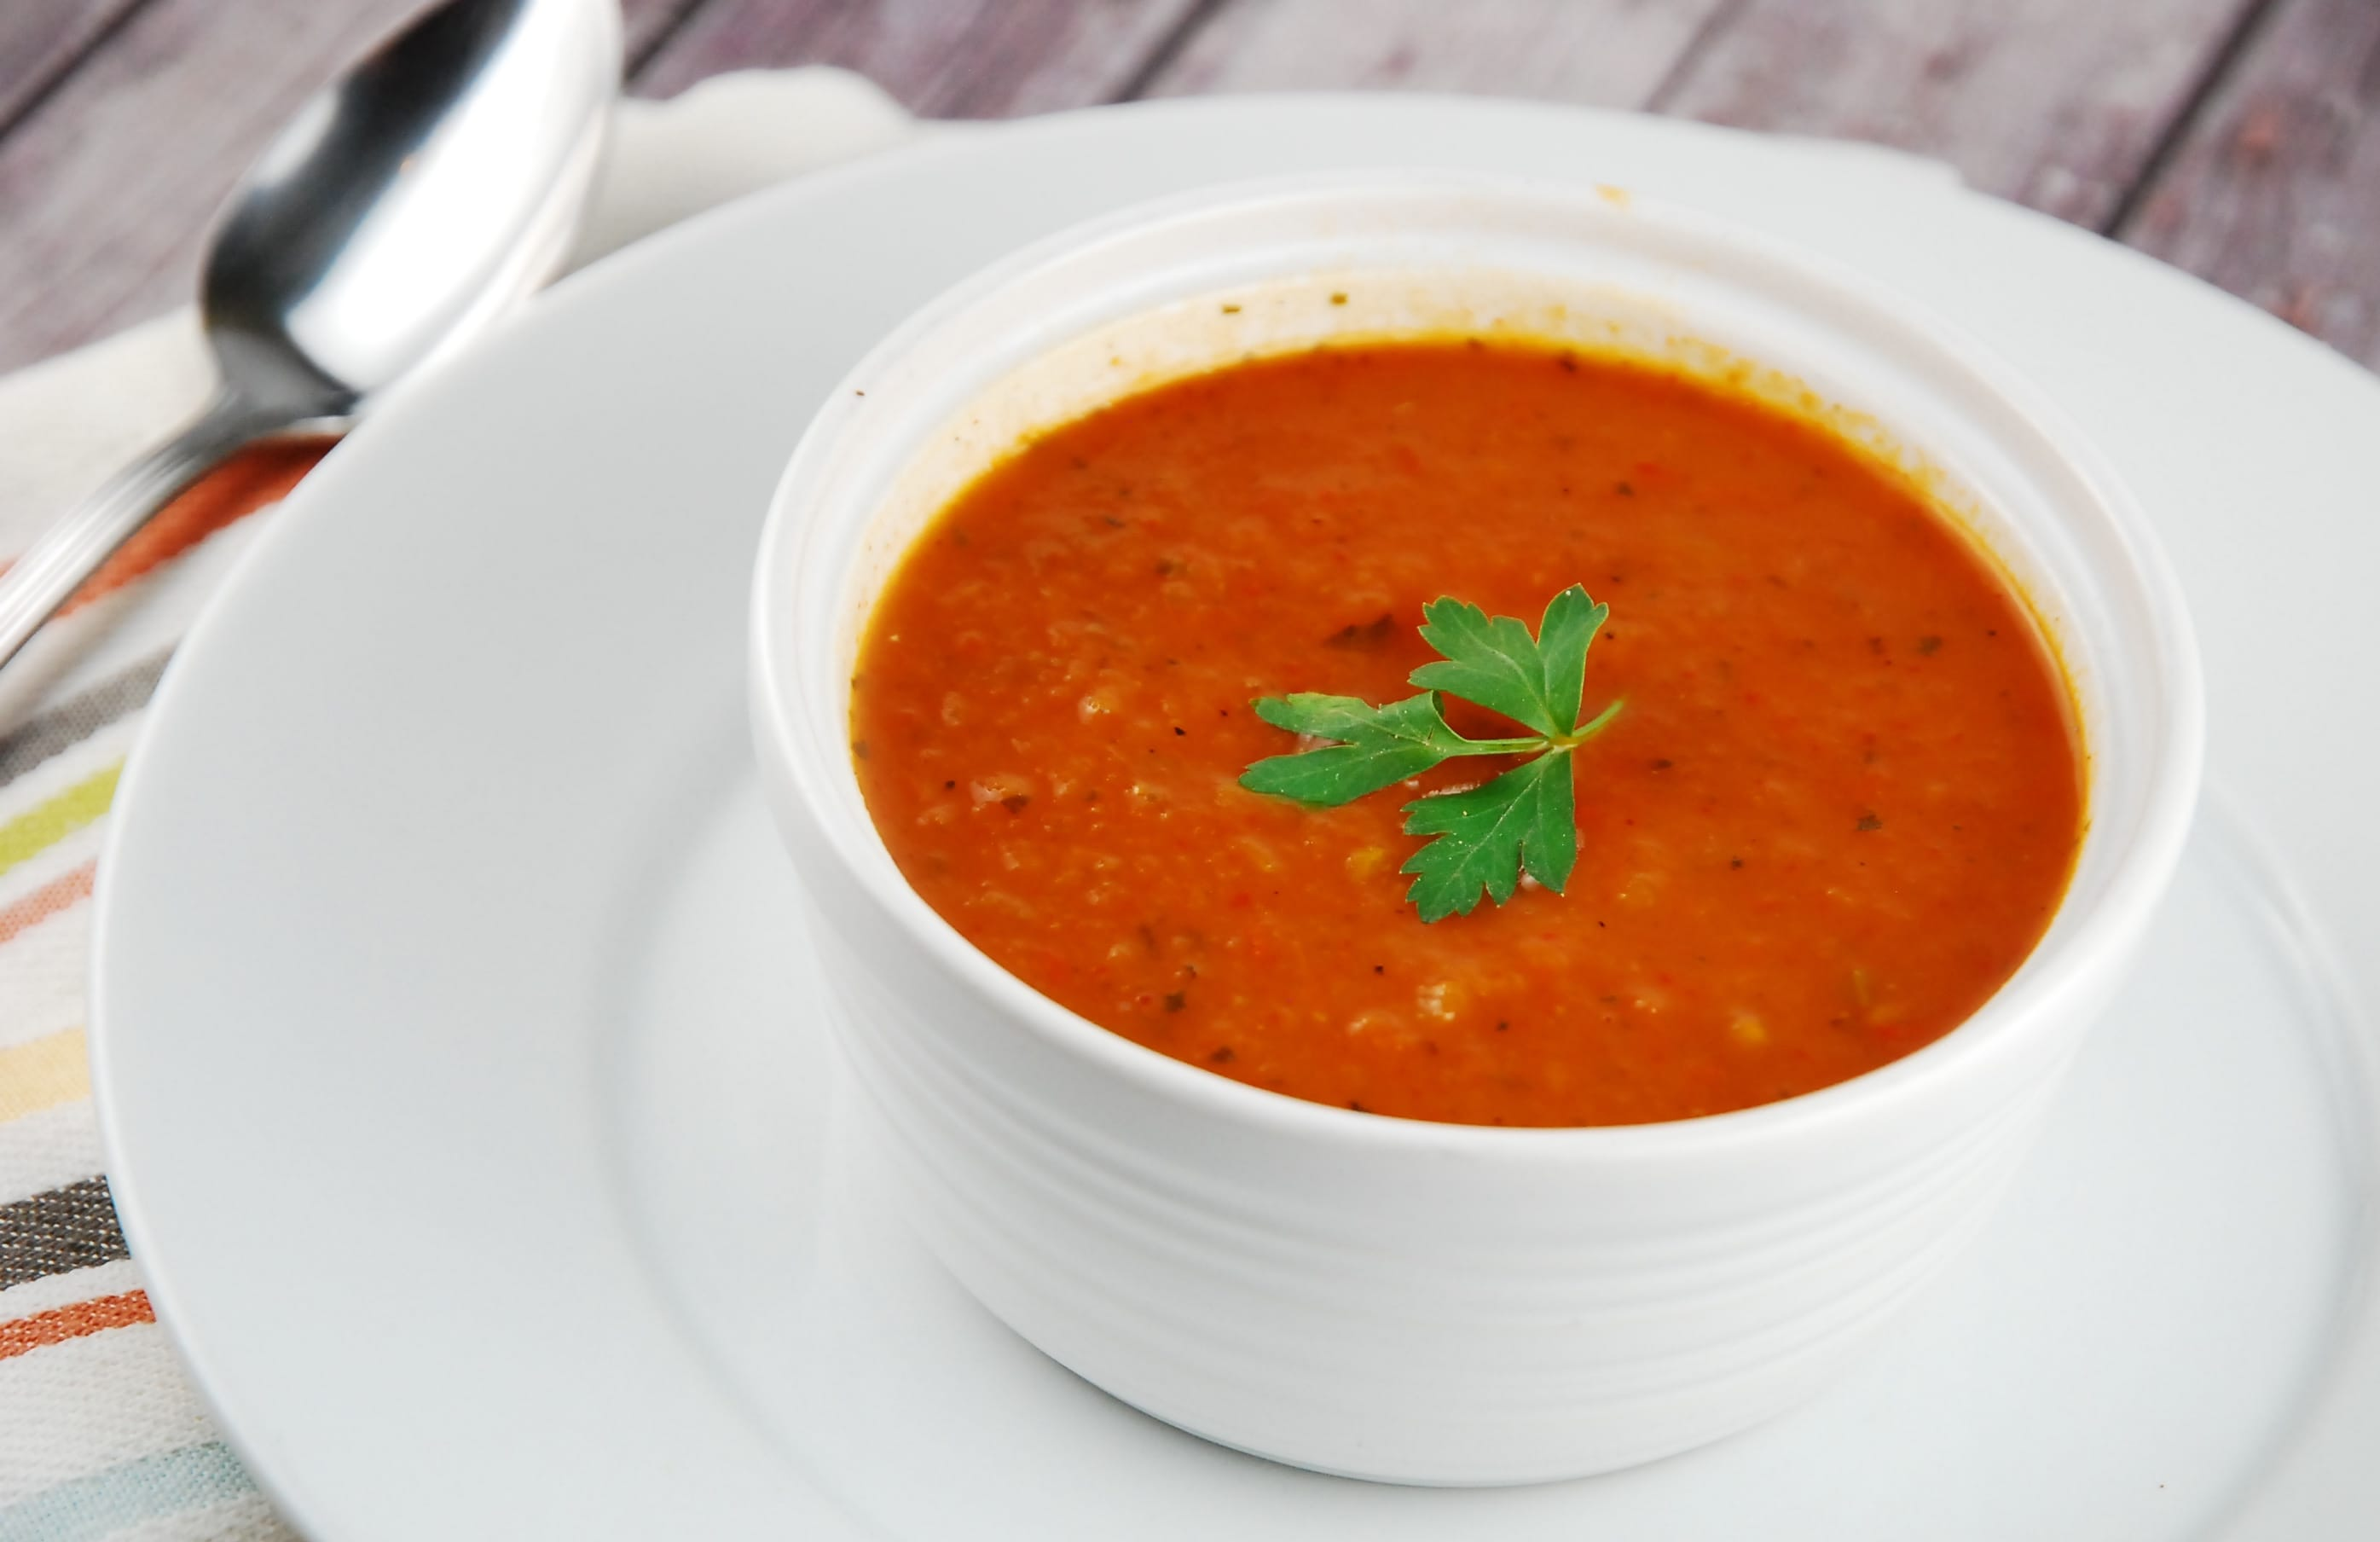 Roasted red pepper and tomato soup recipe 1 point laaloosh for Roasted pepper tomato soup